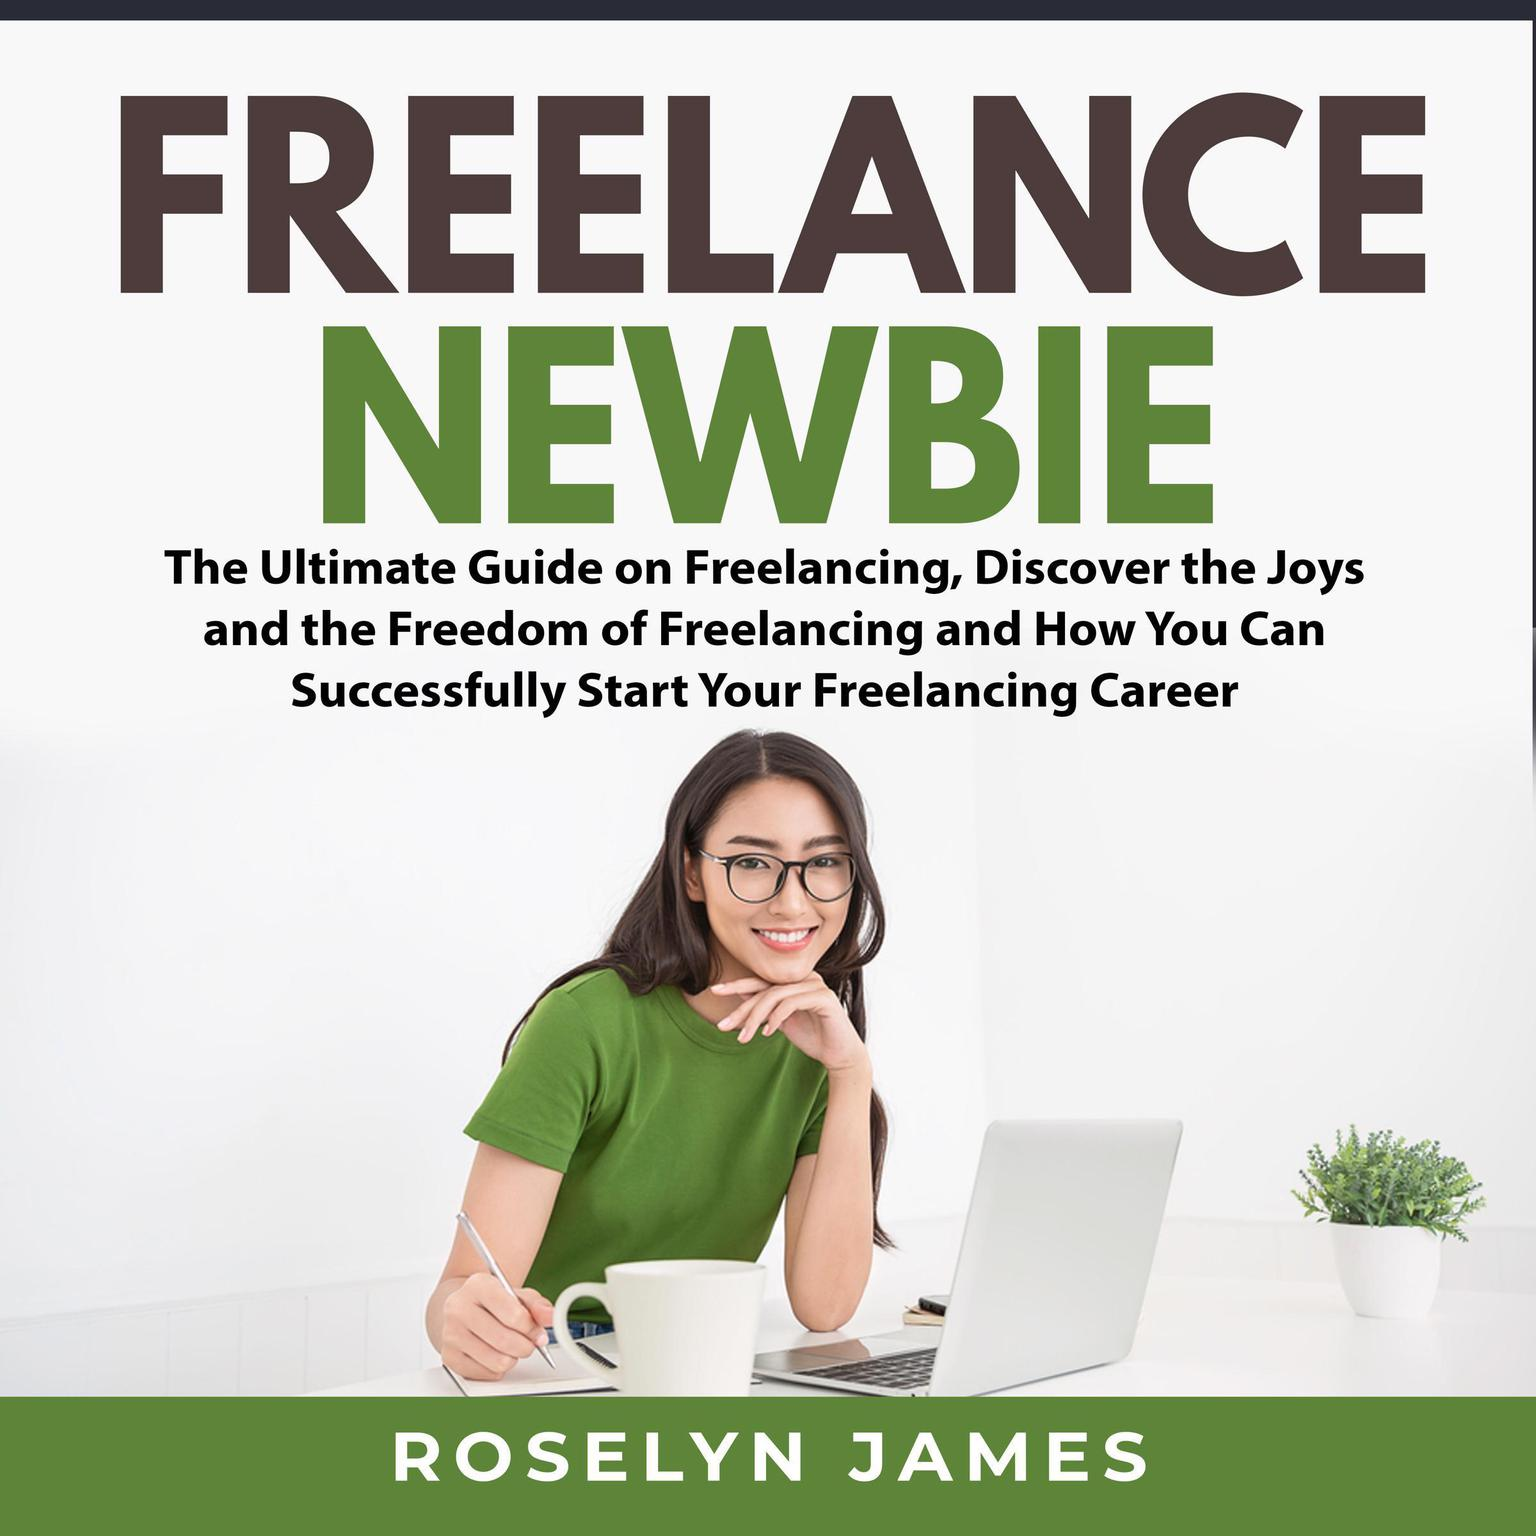 Freelance Newbie:: The Ultimate Guide on Freelancing, Discover the Joys and the Freedom of Freelancing and How You Can Successfully Start Your Freelancing Career  Audiobook, by Roselyn James